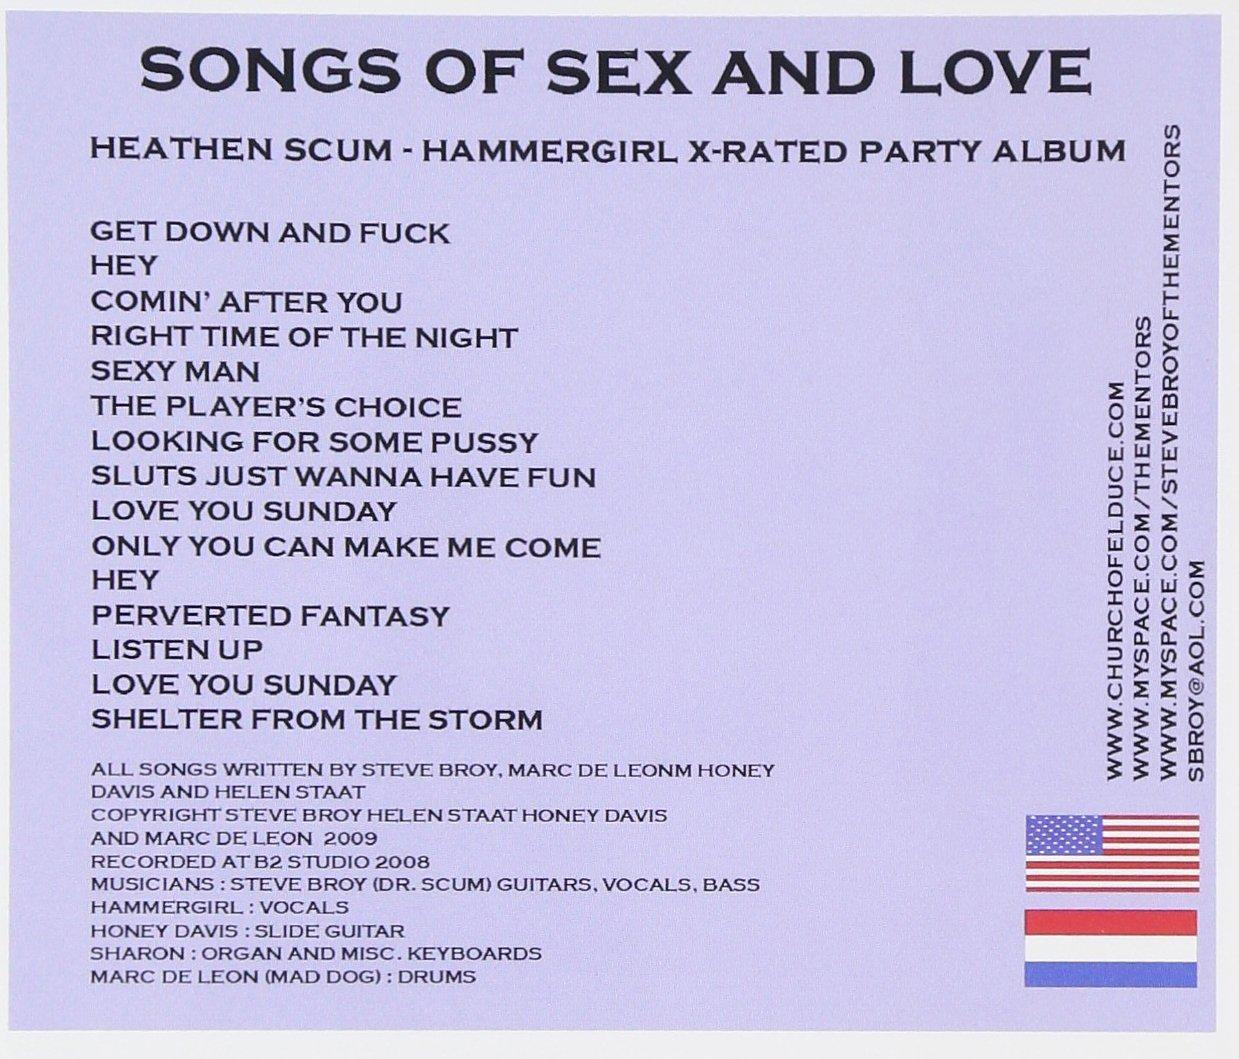 Songs that make you wanna have sex